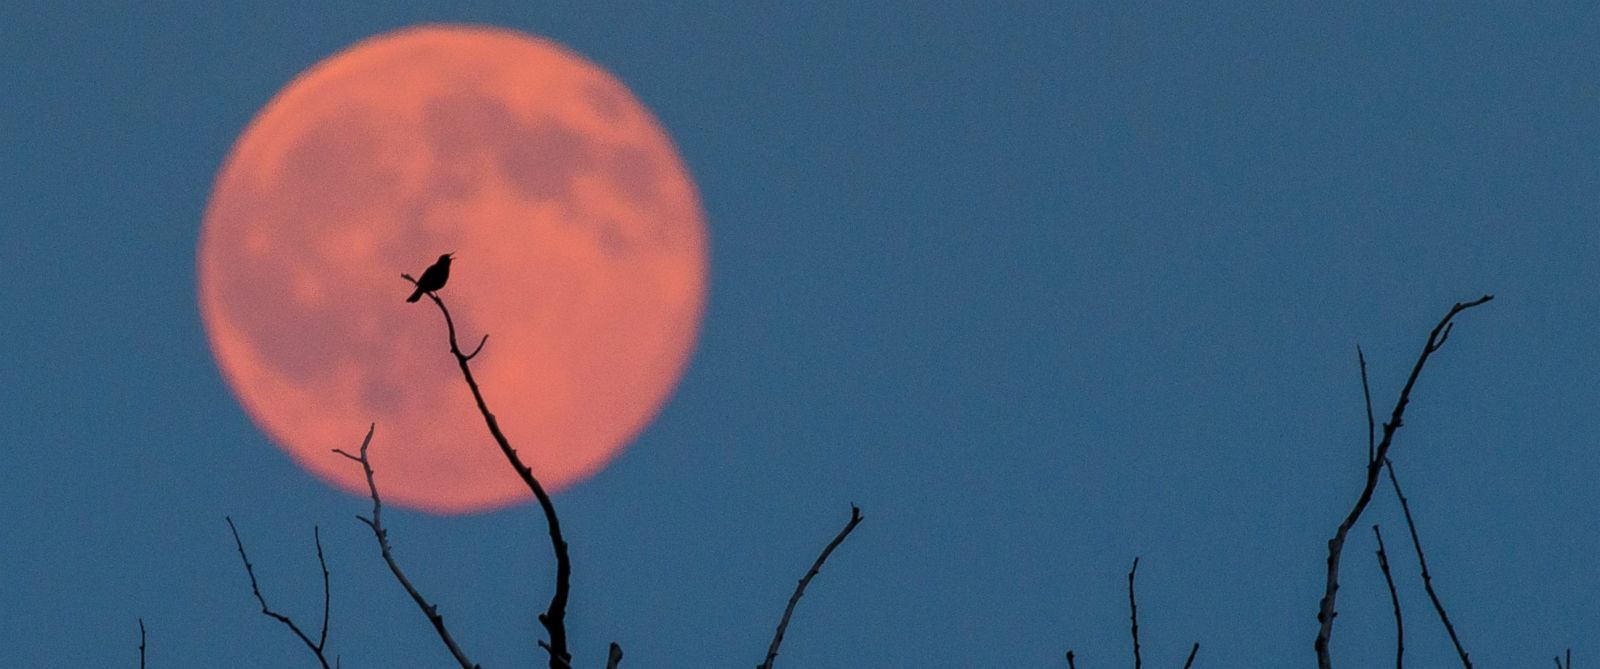 39 Strawberry Moon 39 Lights Up Sky In Rare Lunar Event Abc News